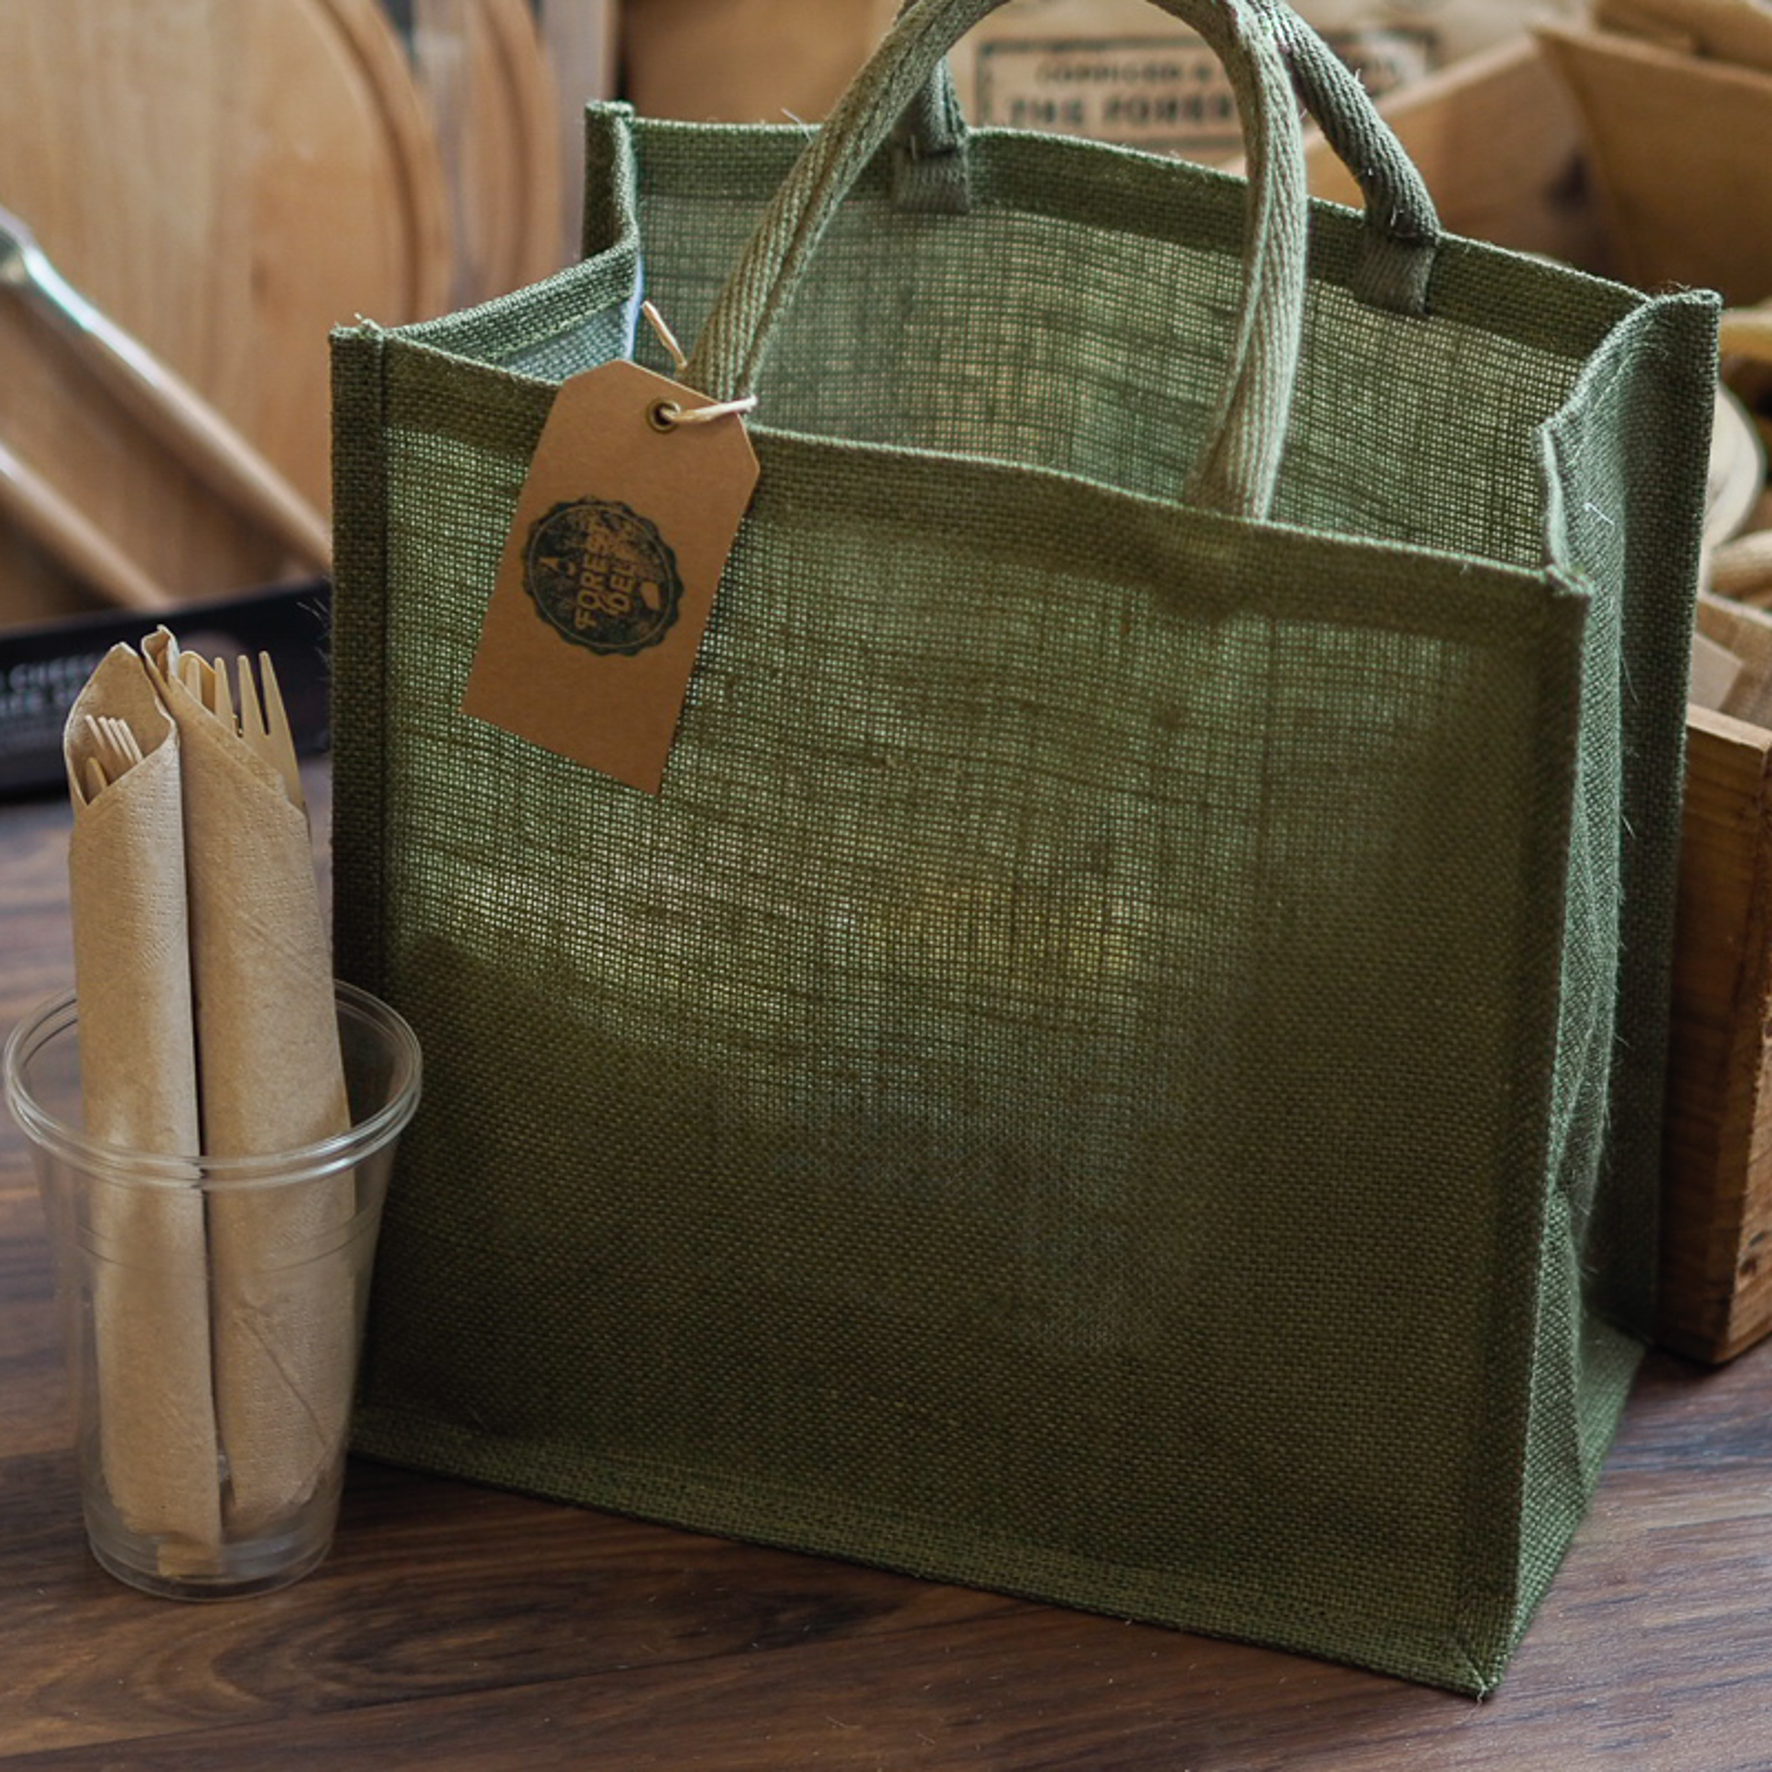 These lovely Jute Bags are a perfect picnic hamper alternative and are completely re-usable